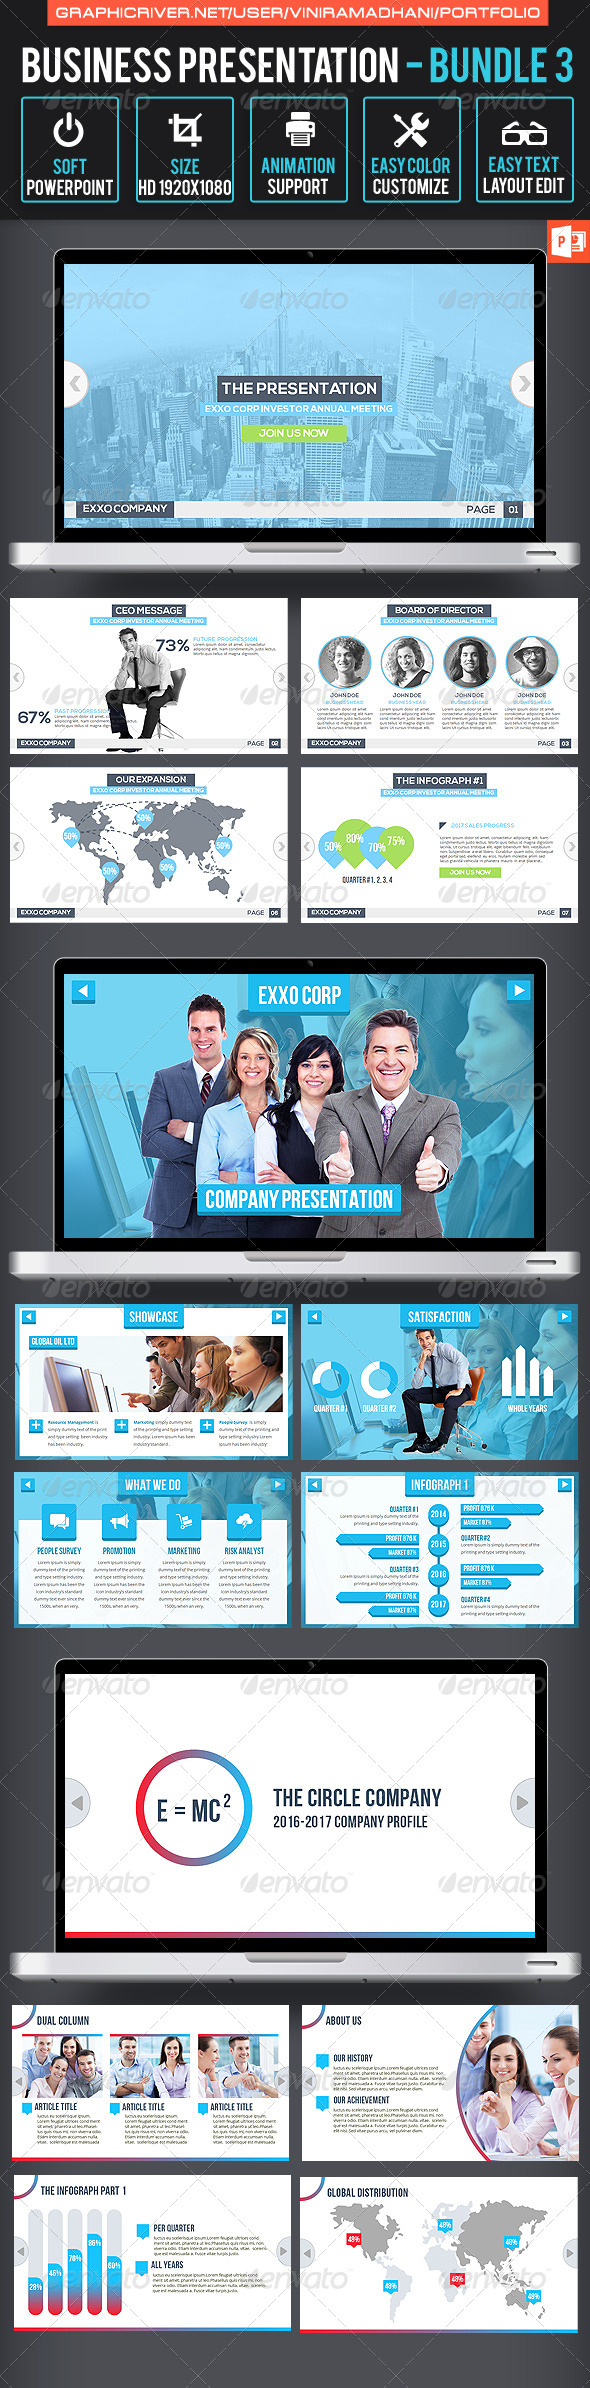 GraphicRiver Business Presentation Bundle 3 7324465